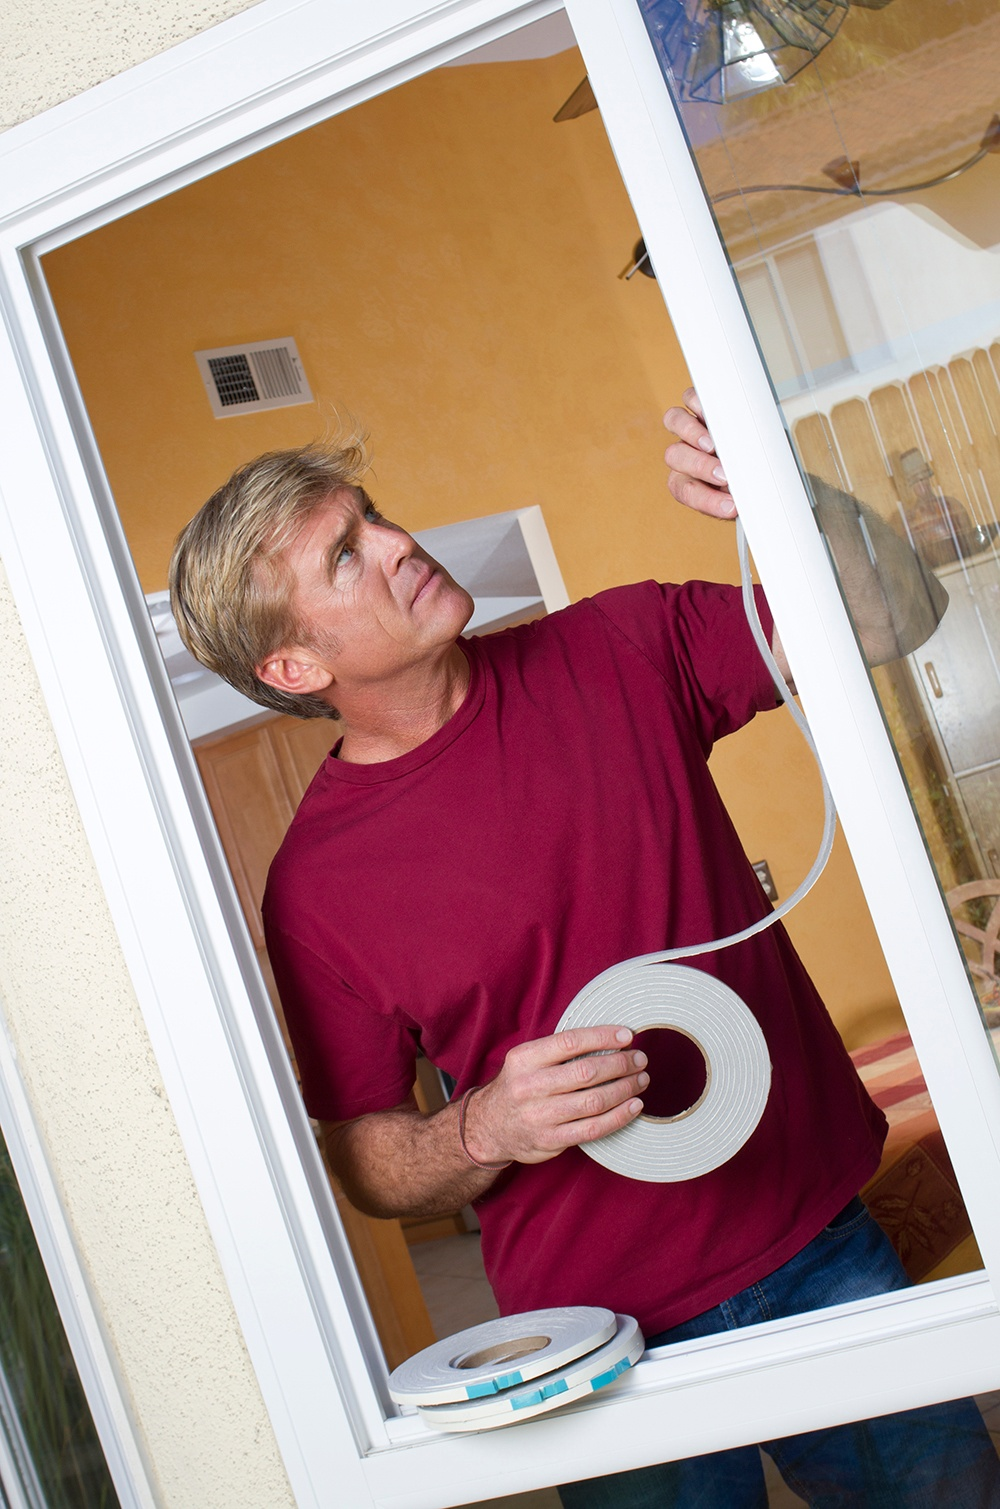 Man weather stripping a window. Weather stripping is a great way to save energy.